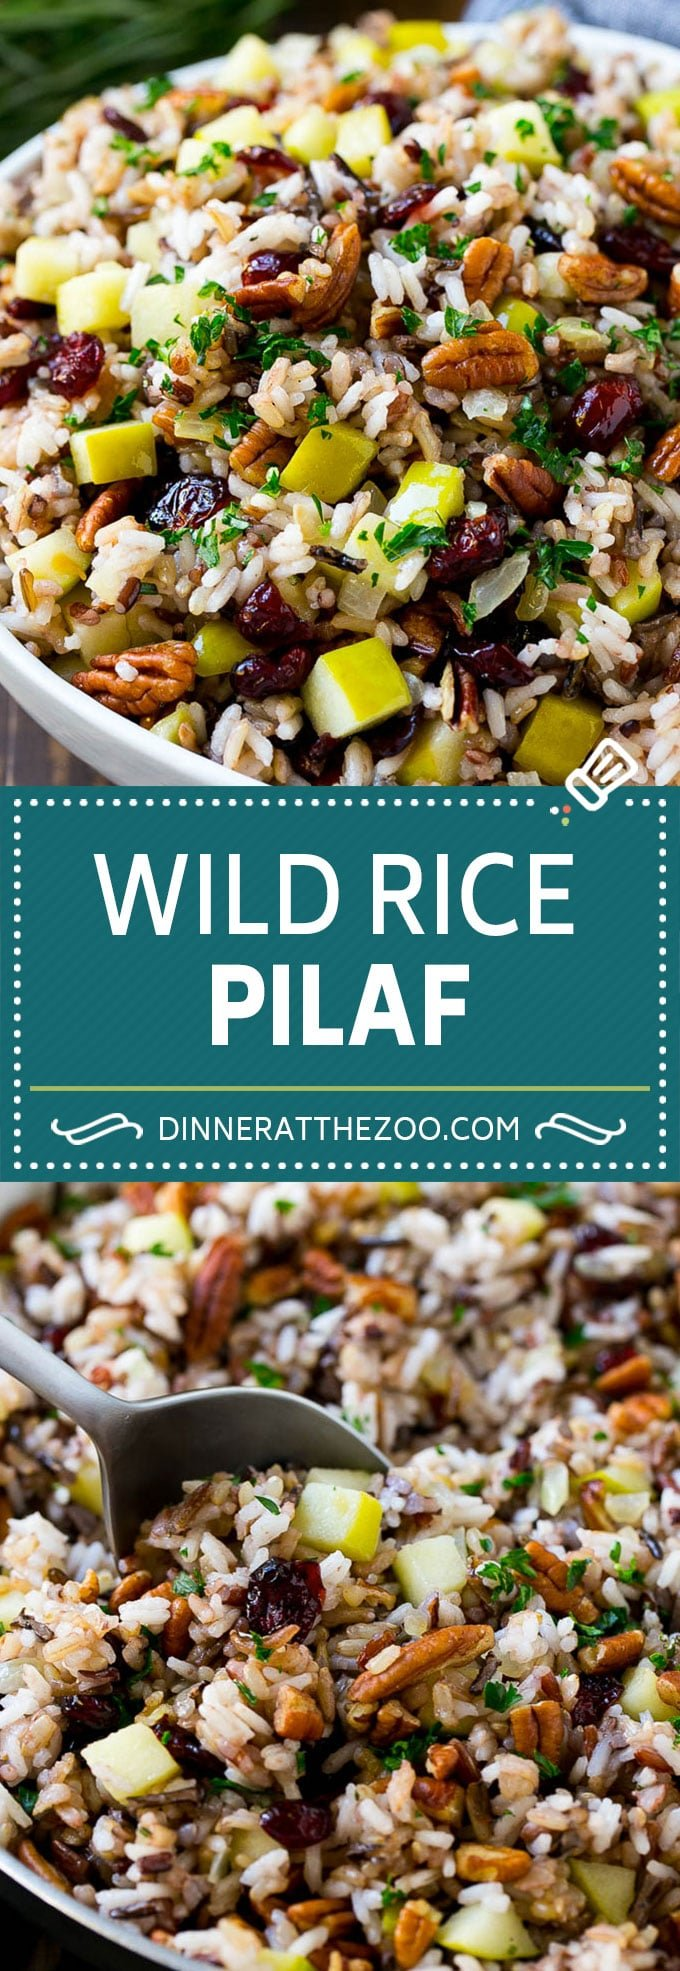 Wild Rice Pilaf Recipe | Thanksgiving Side Dish | Rice Pilaf #rice #apple #cranberry #fall #glutenfree #thanksgiving #dinneratthezoo